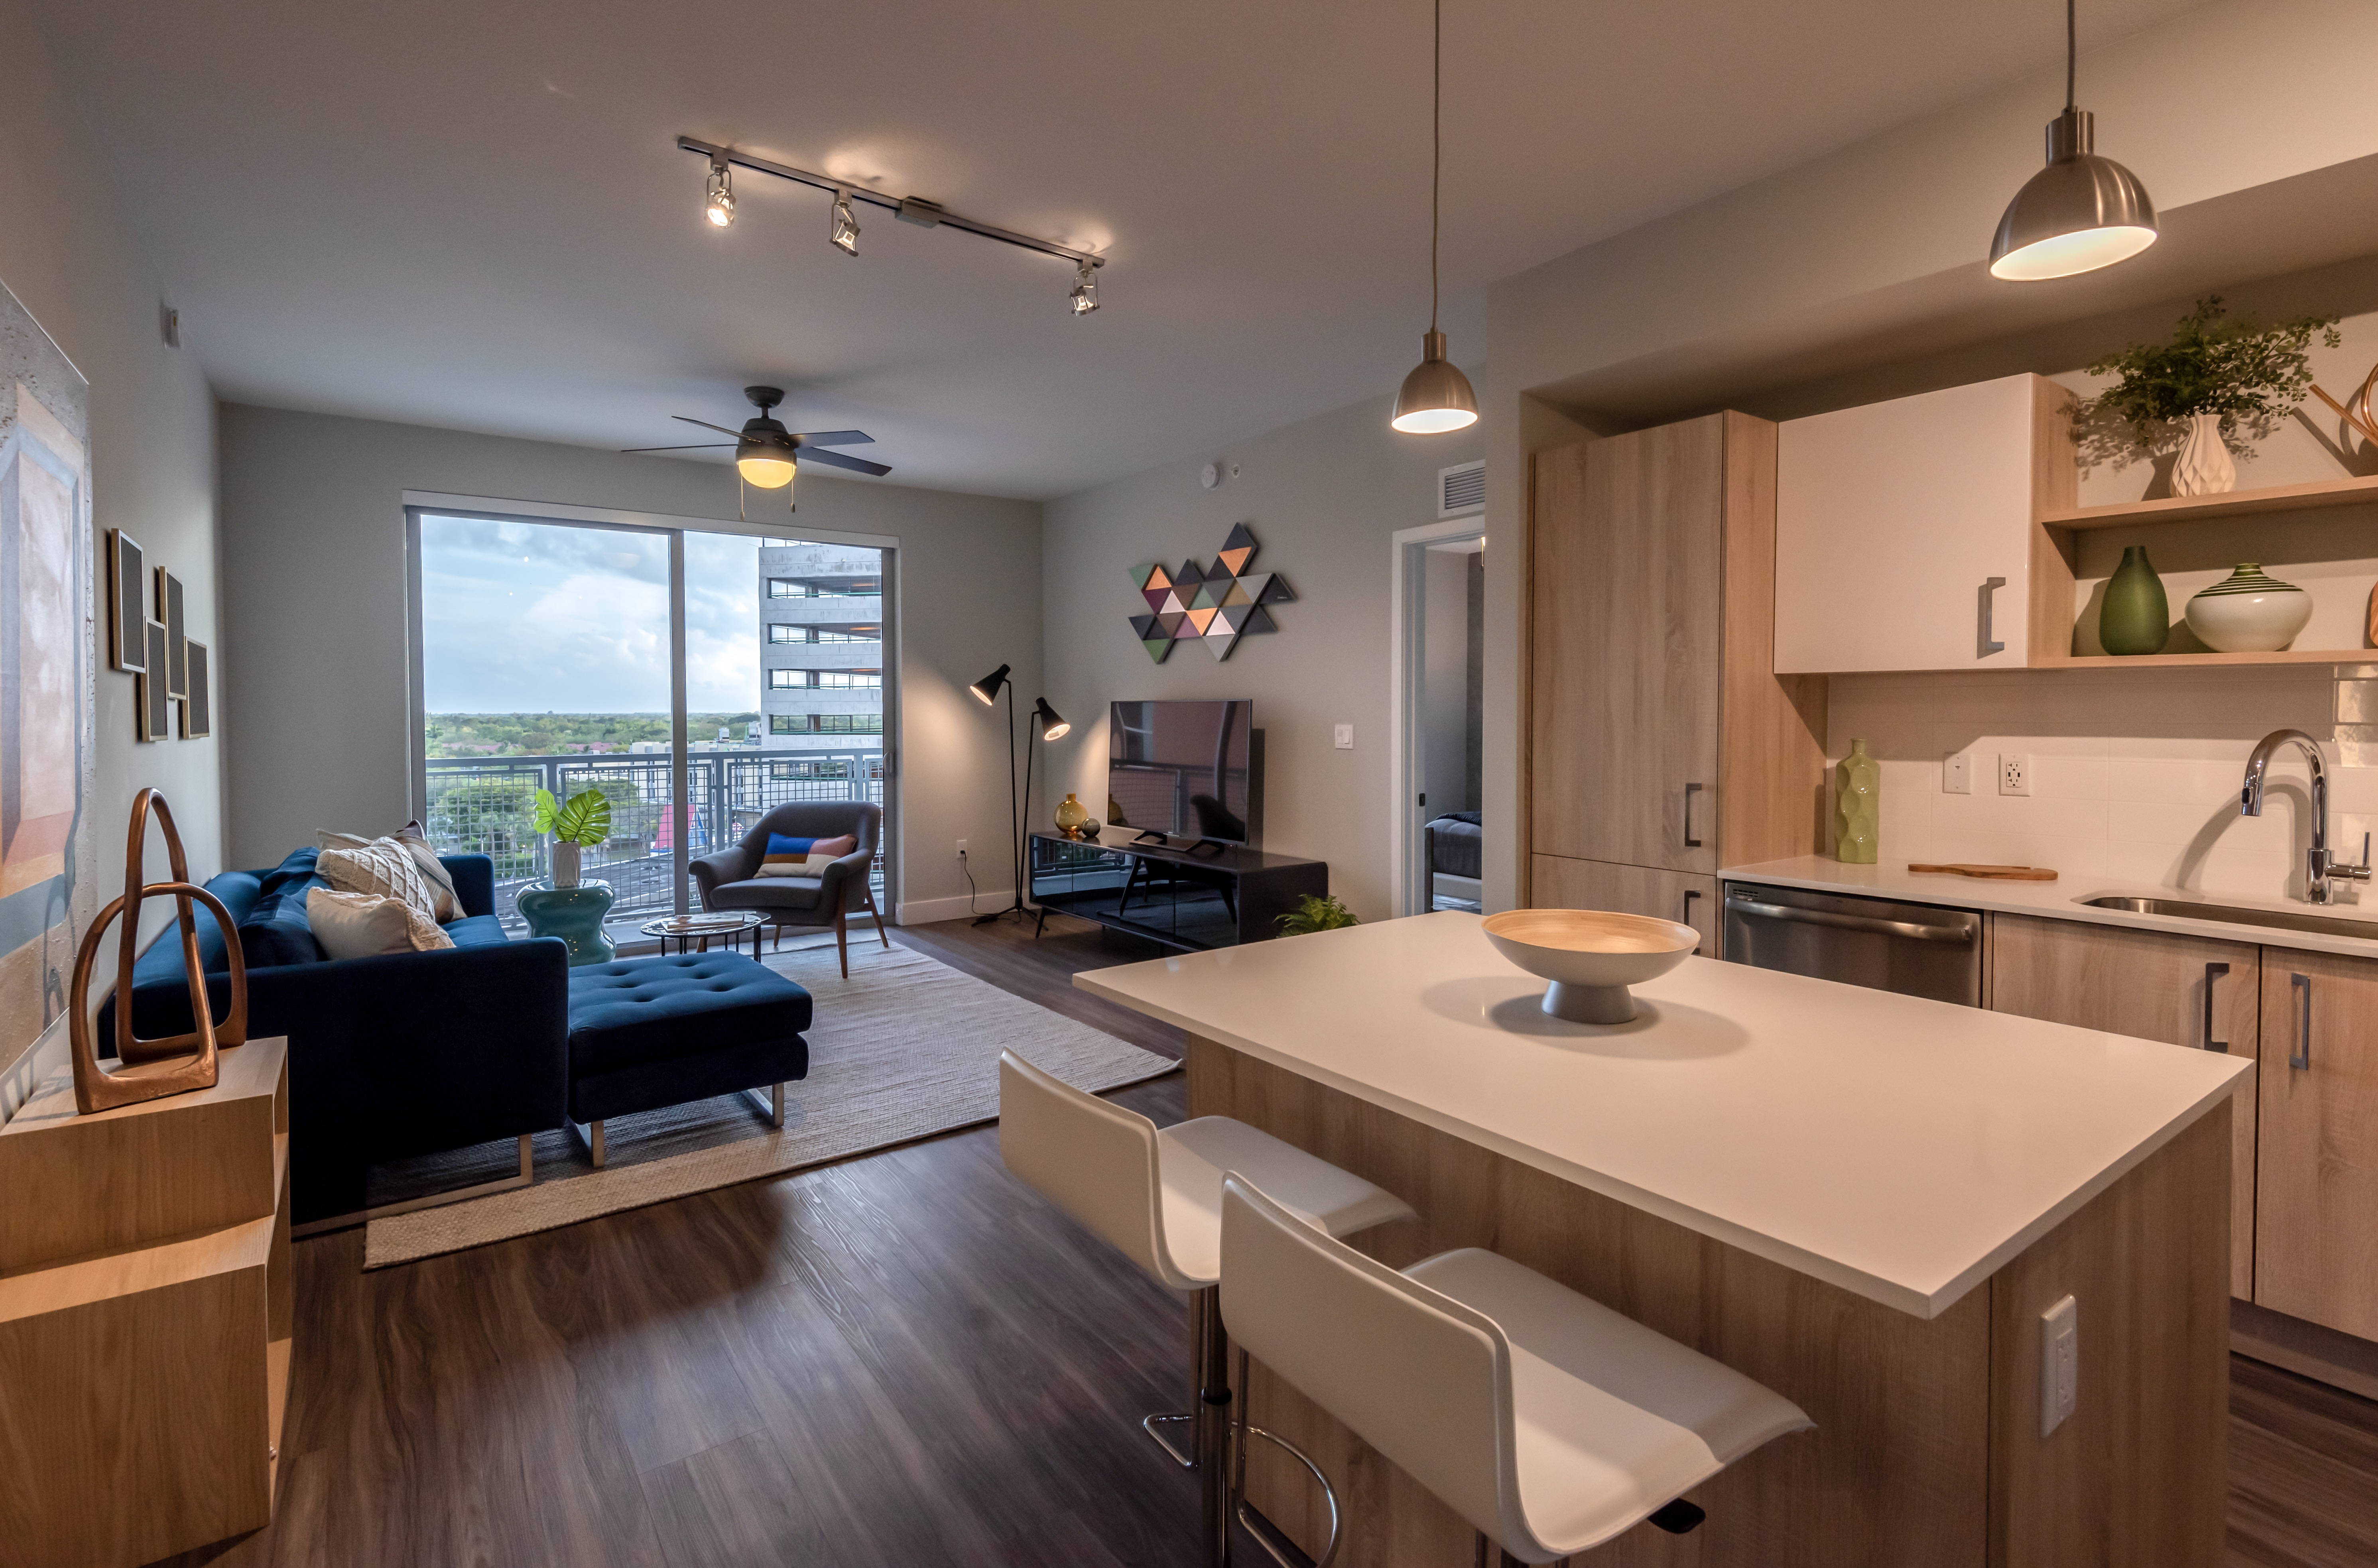 Furnished modern apartment with light wood kitchen cabinets, living room view with balcony